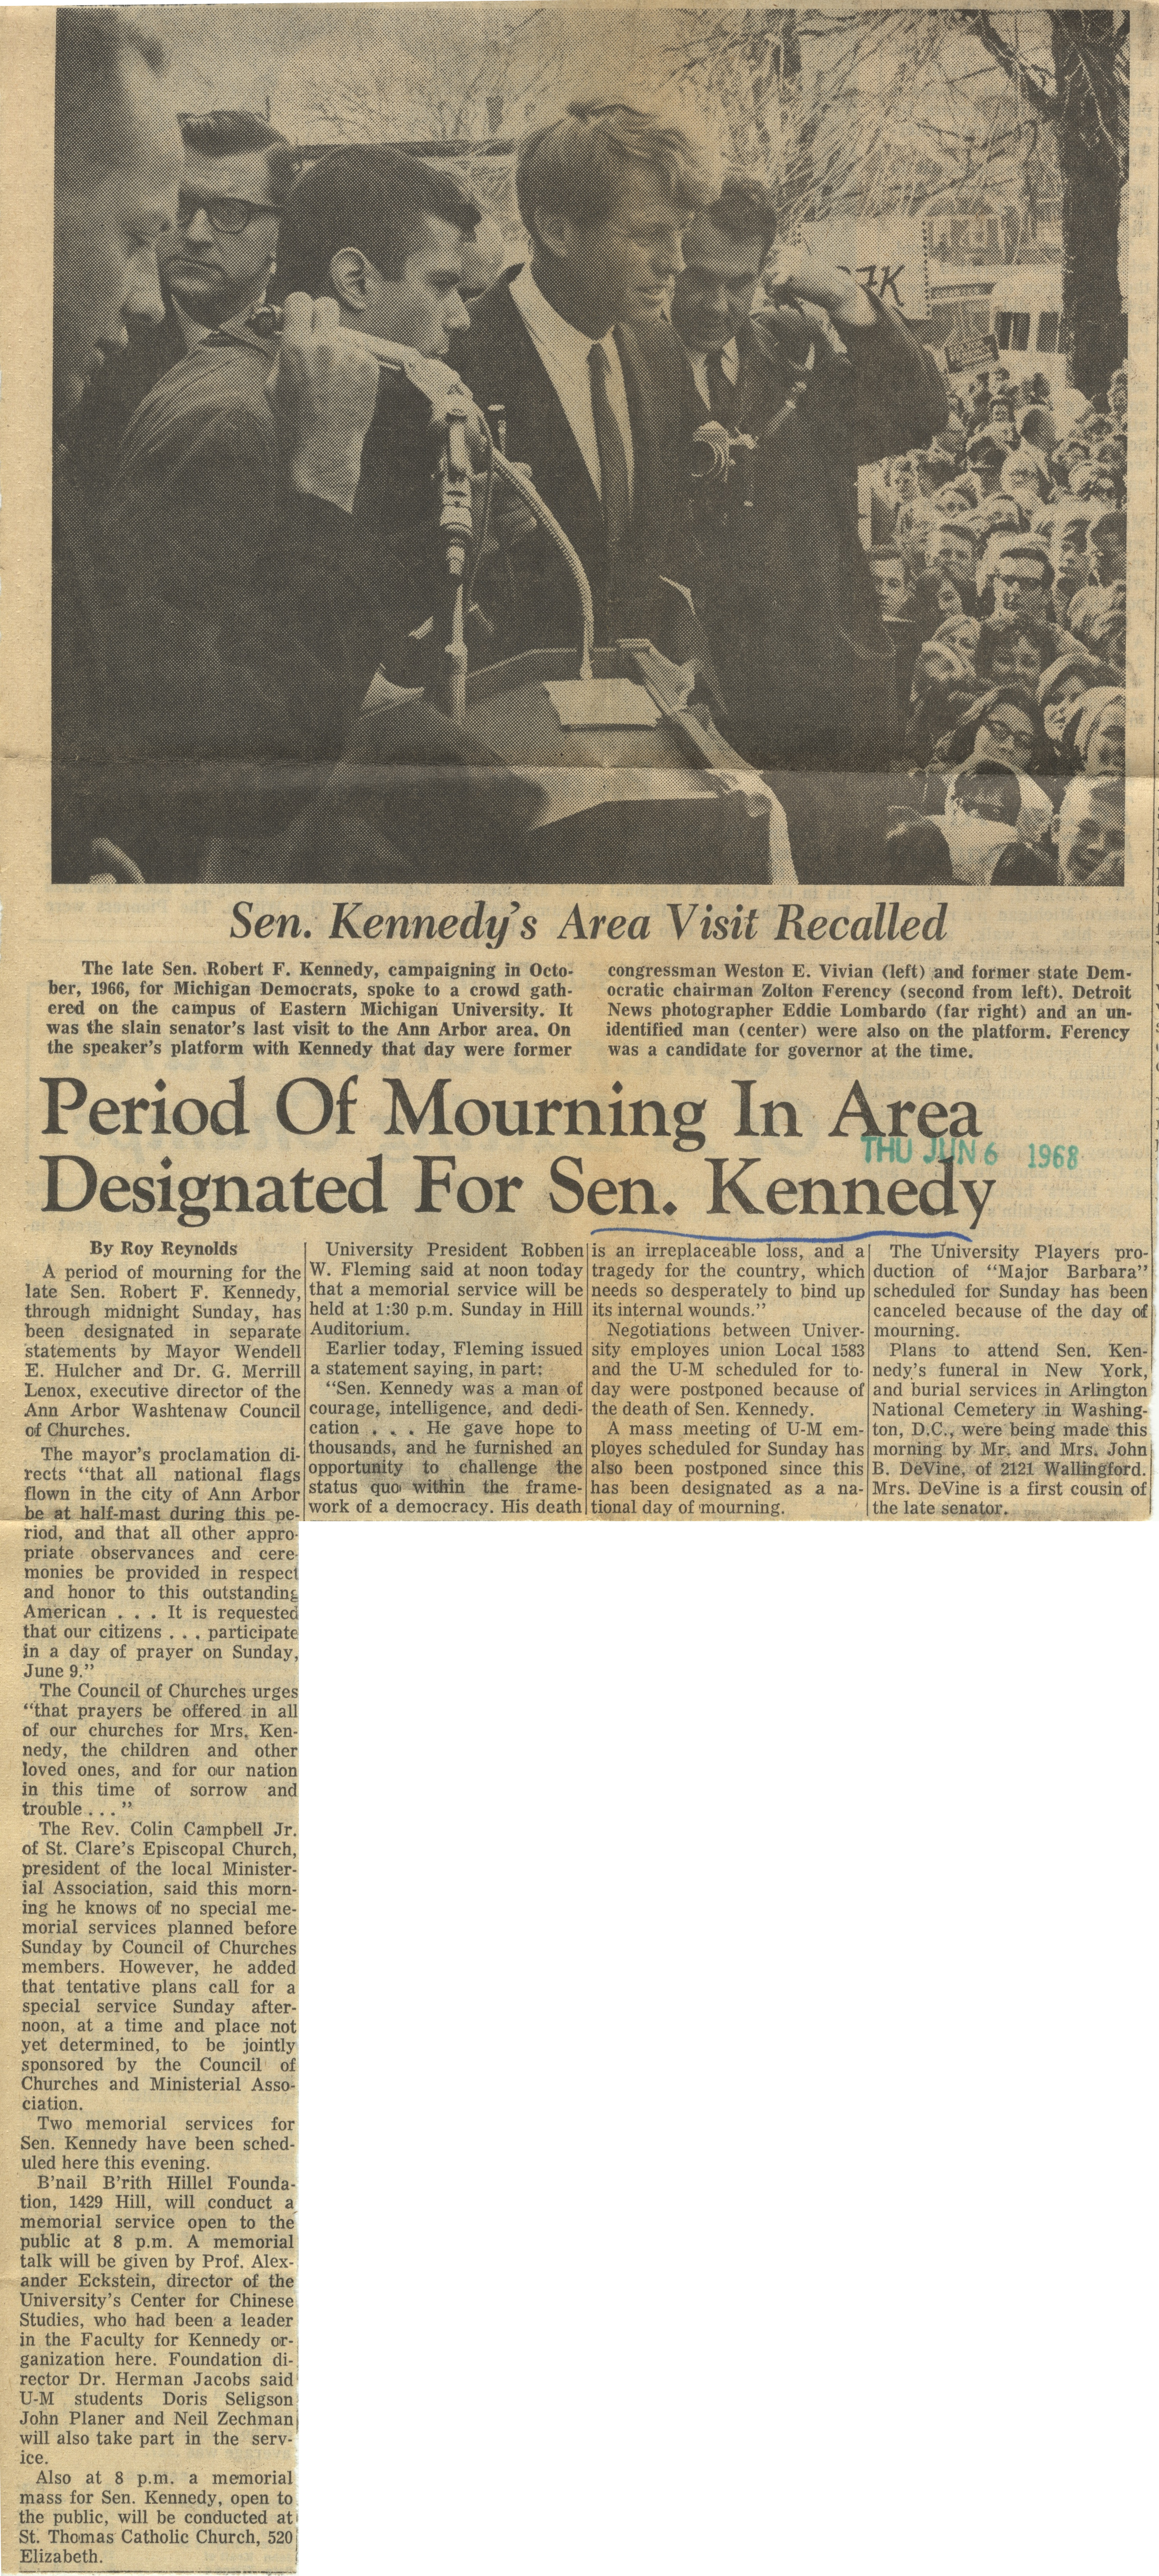 Period of Mourning In Area Designated For Sen. Kennedy image